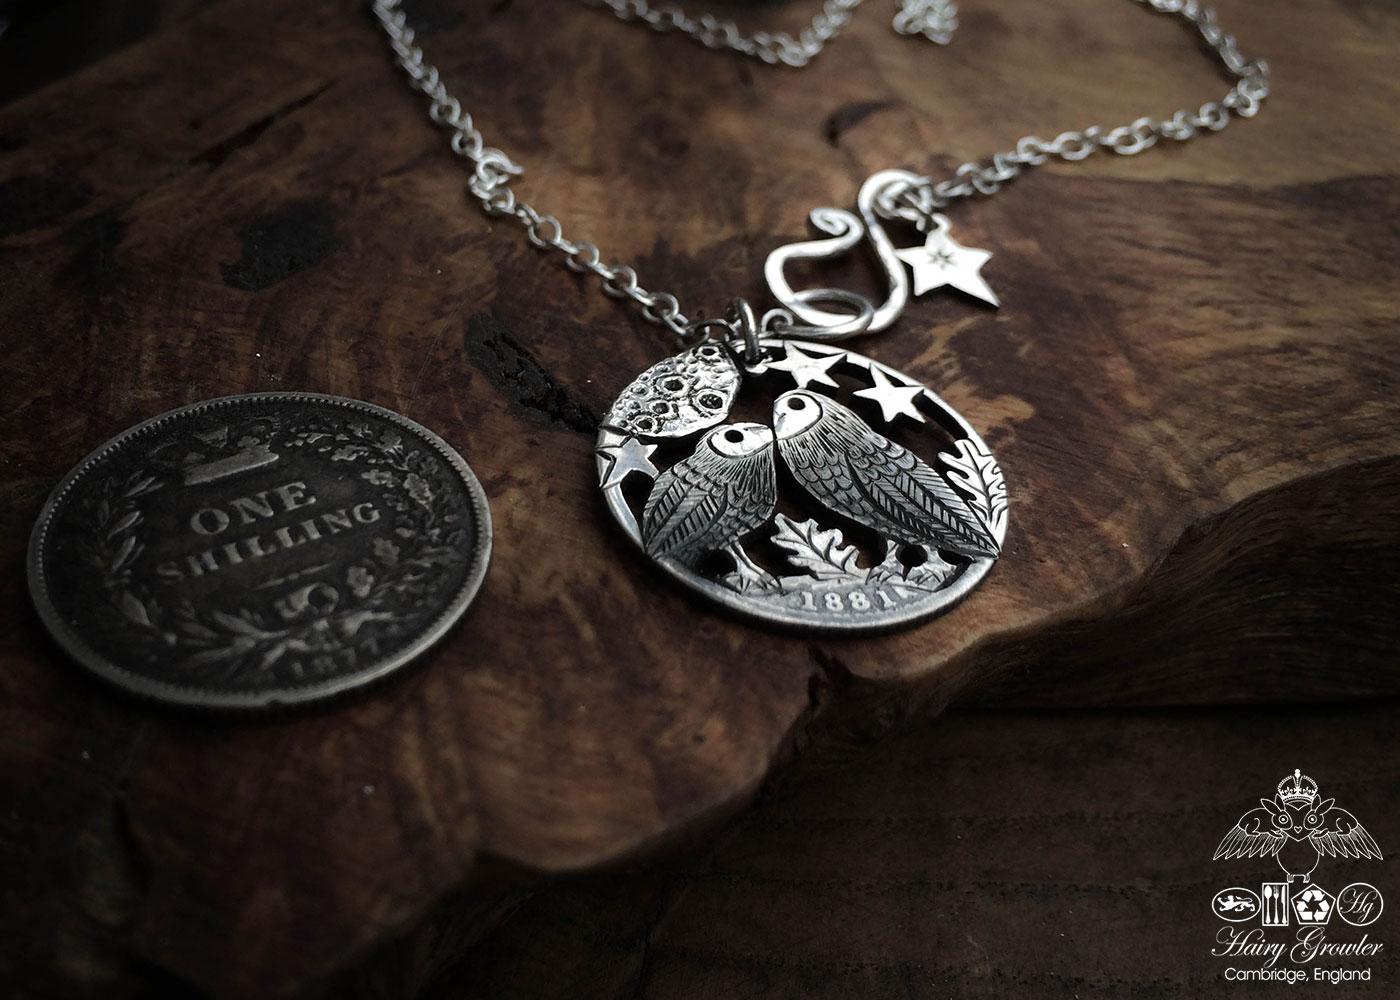 Handmade and upycled silver shilling The Silver Shilling collection. silver kissing owls necklace totally handcrafted and recycled from old sterling silver shilling coins. Designed and created by Hairy Growler Jewellery, Cambridge, UK. necklace